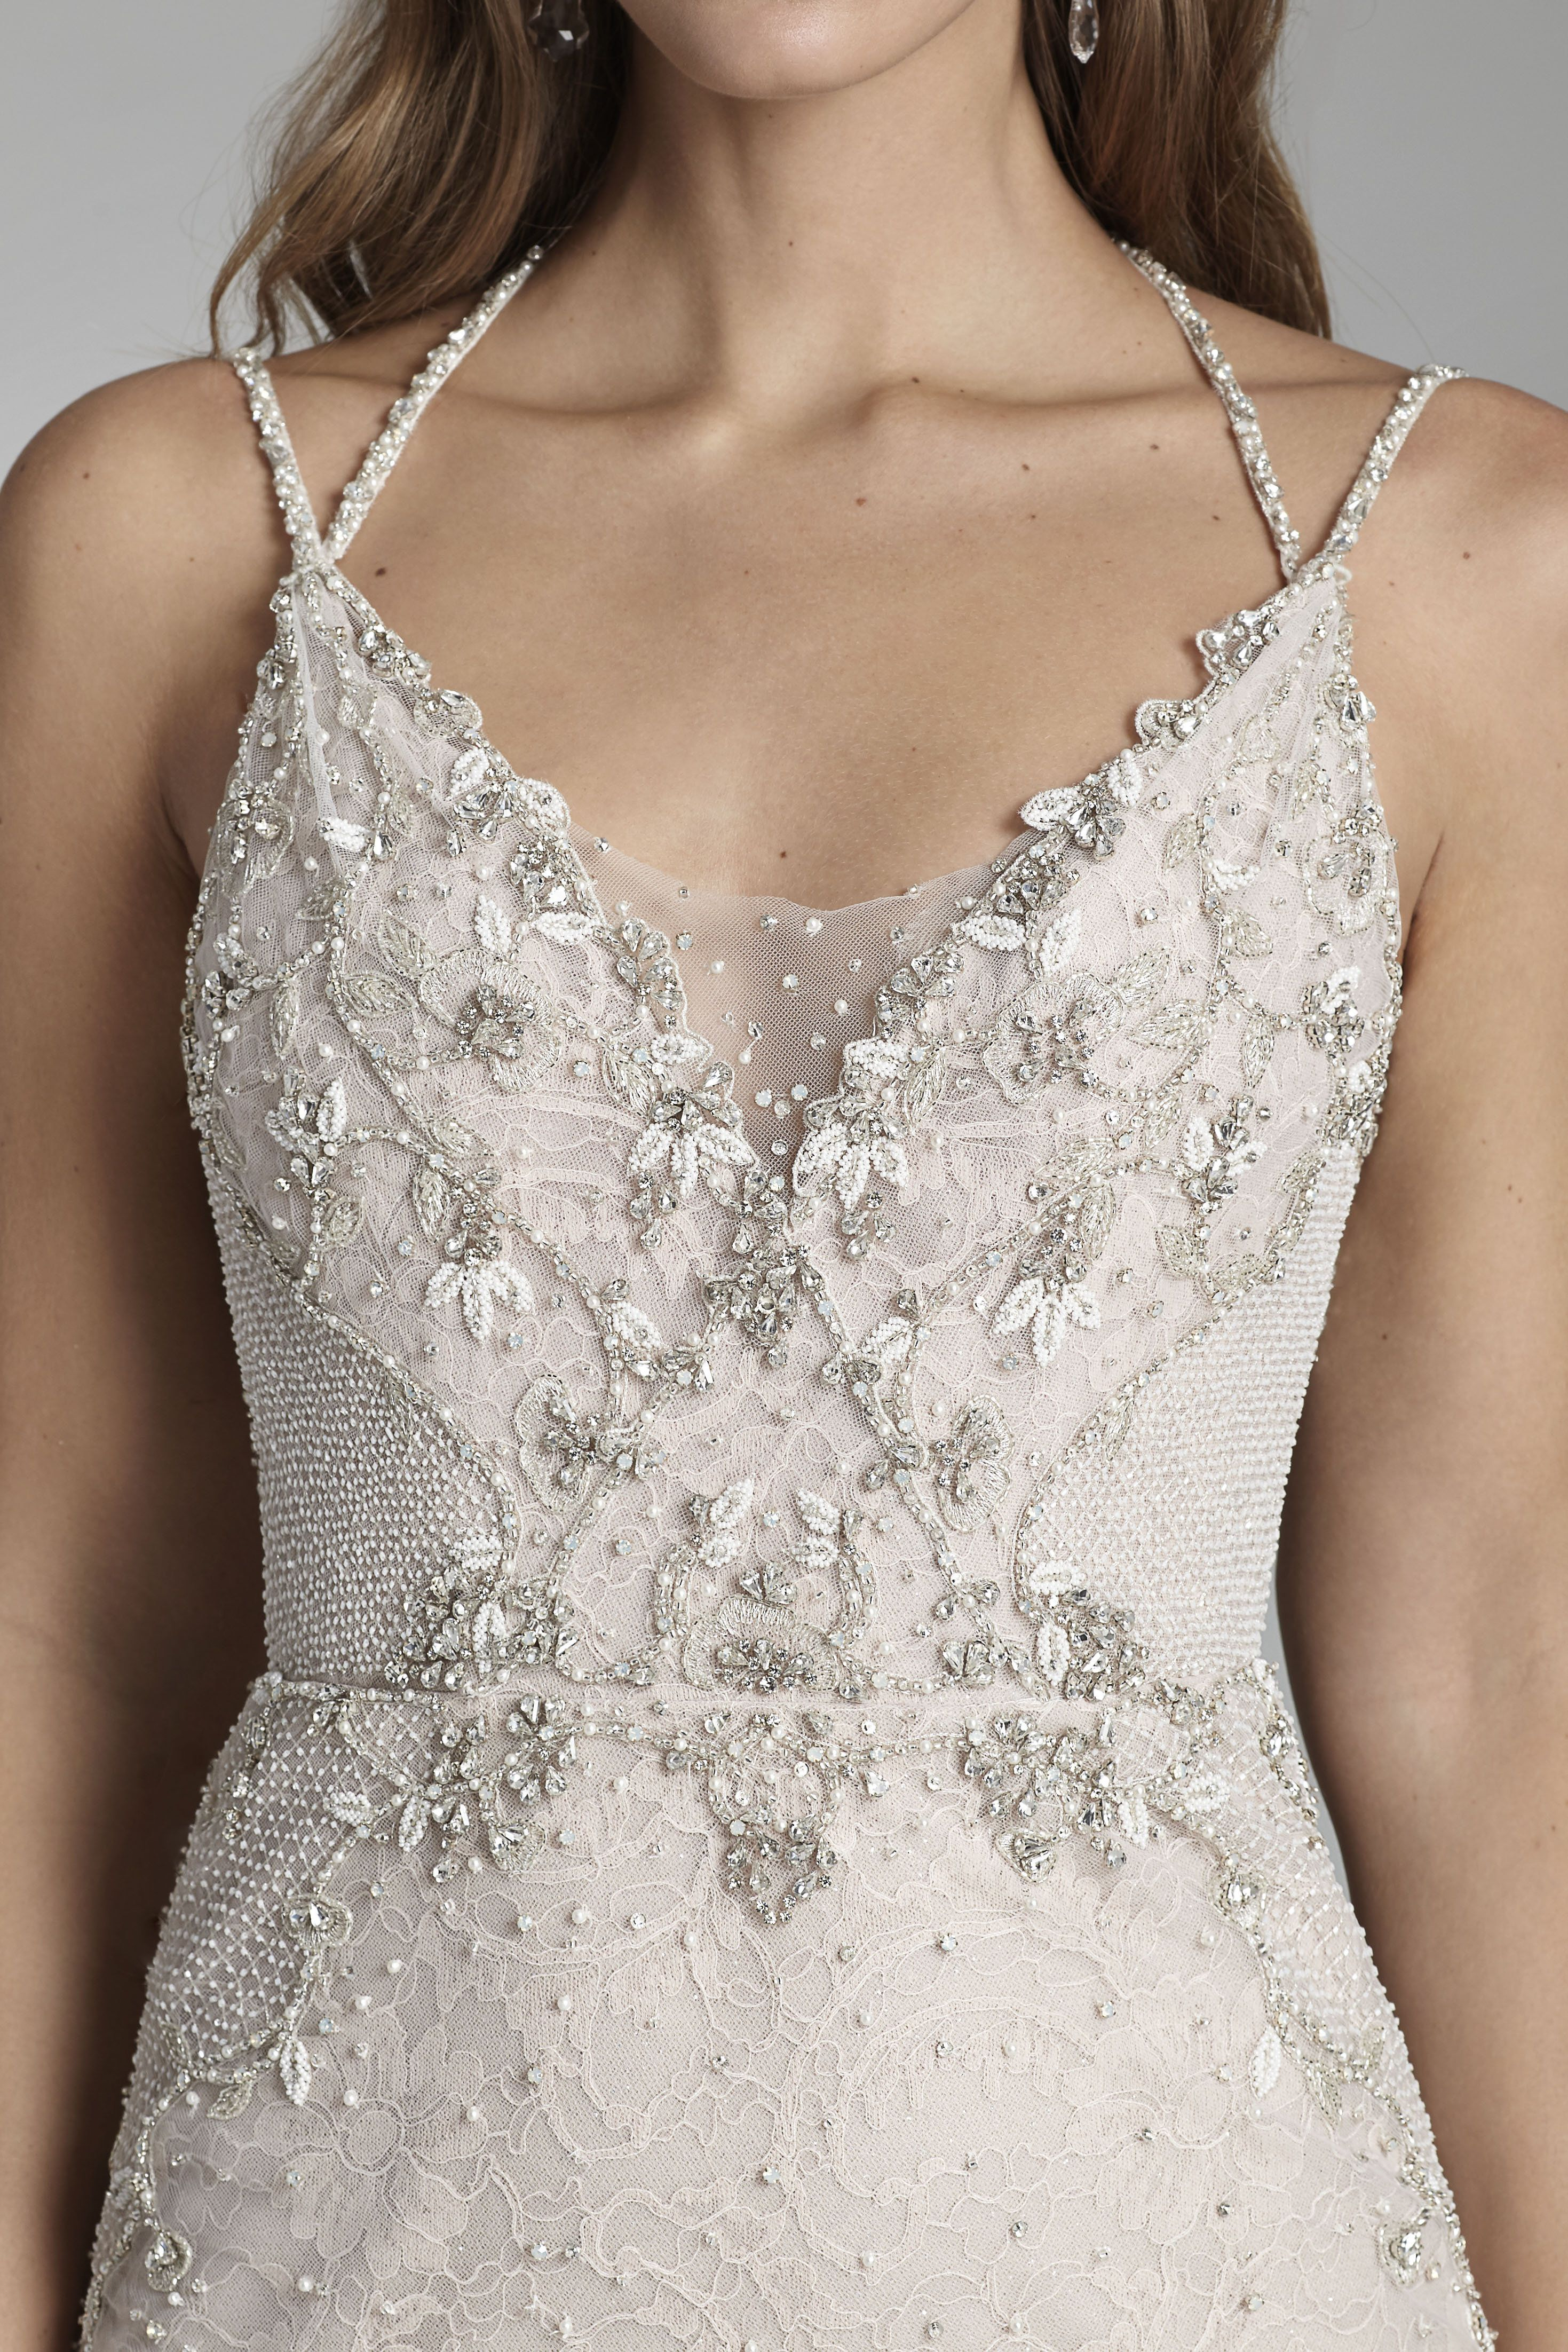 Style lookbook close up f gowns pinterest bridal gowns